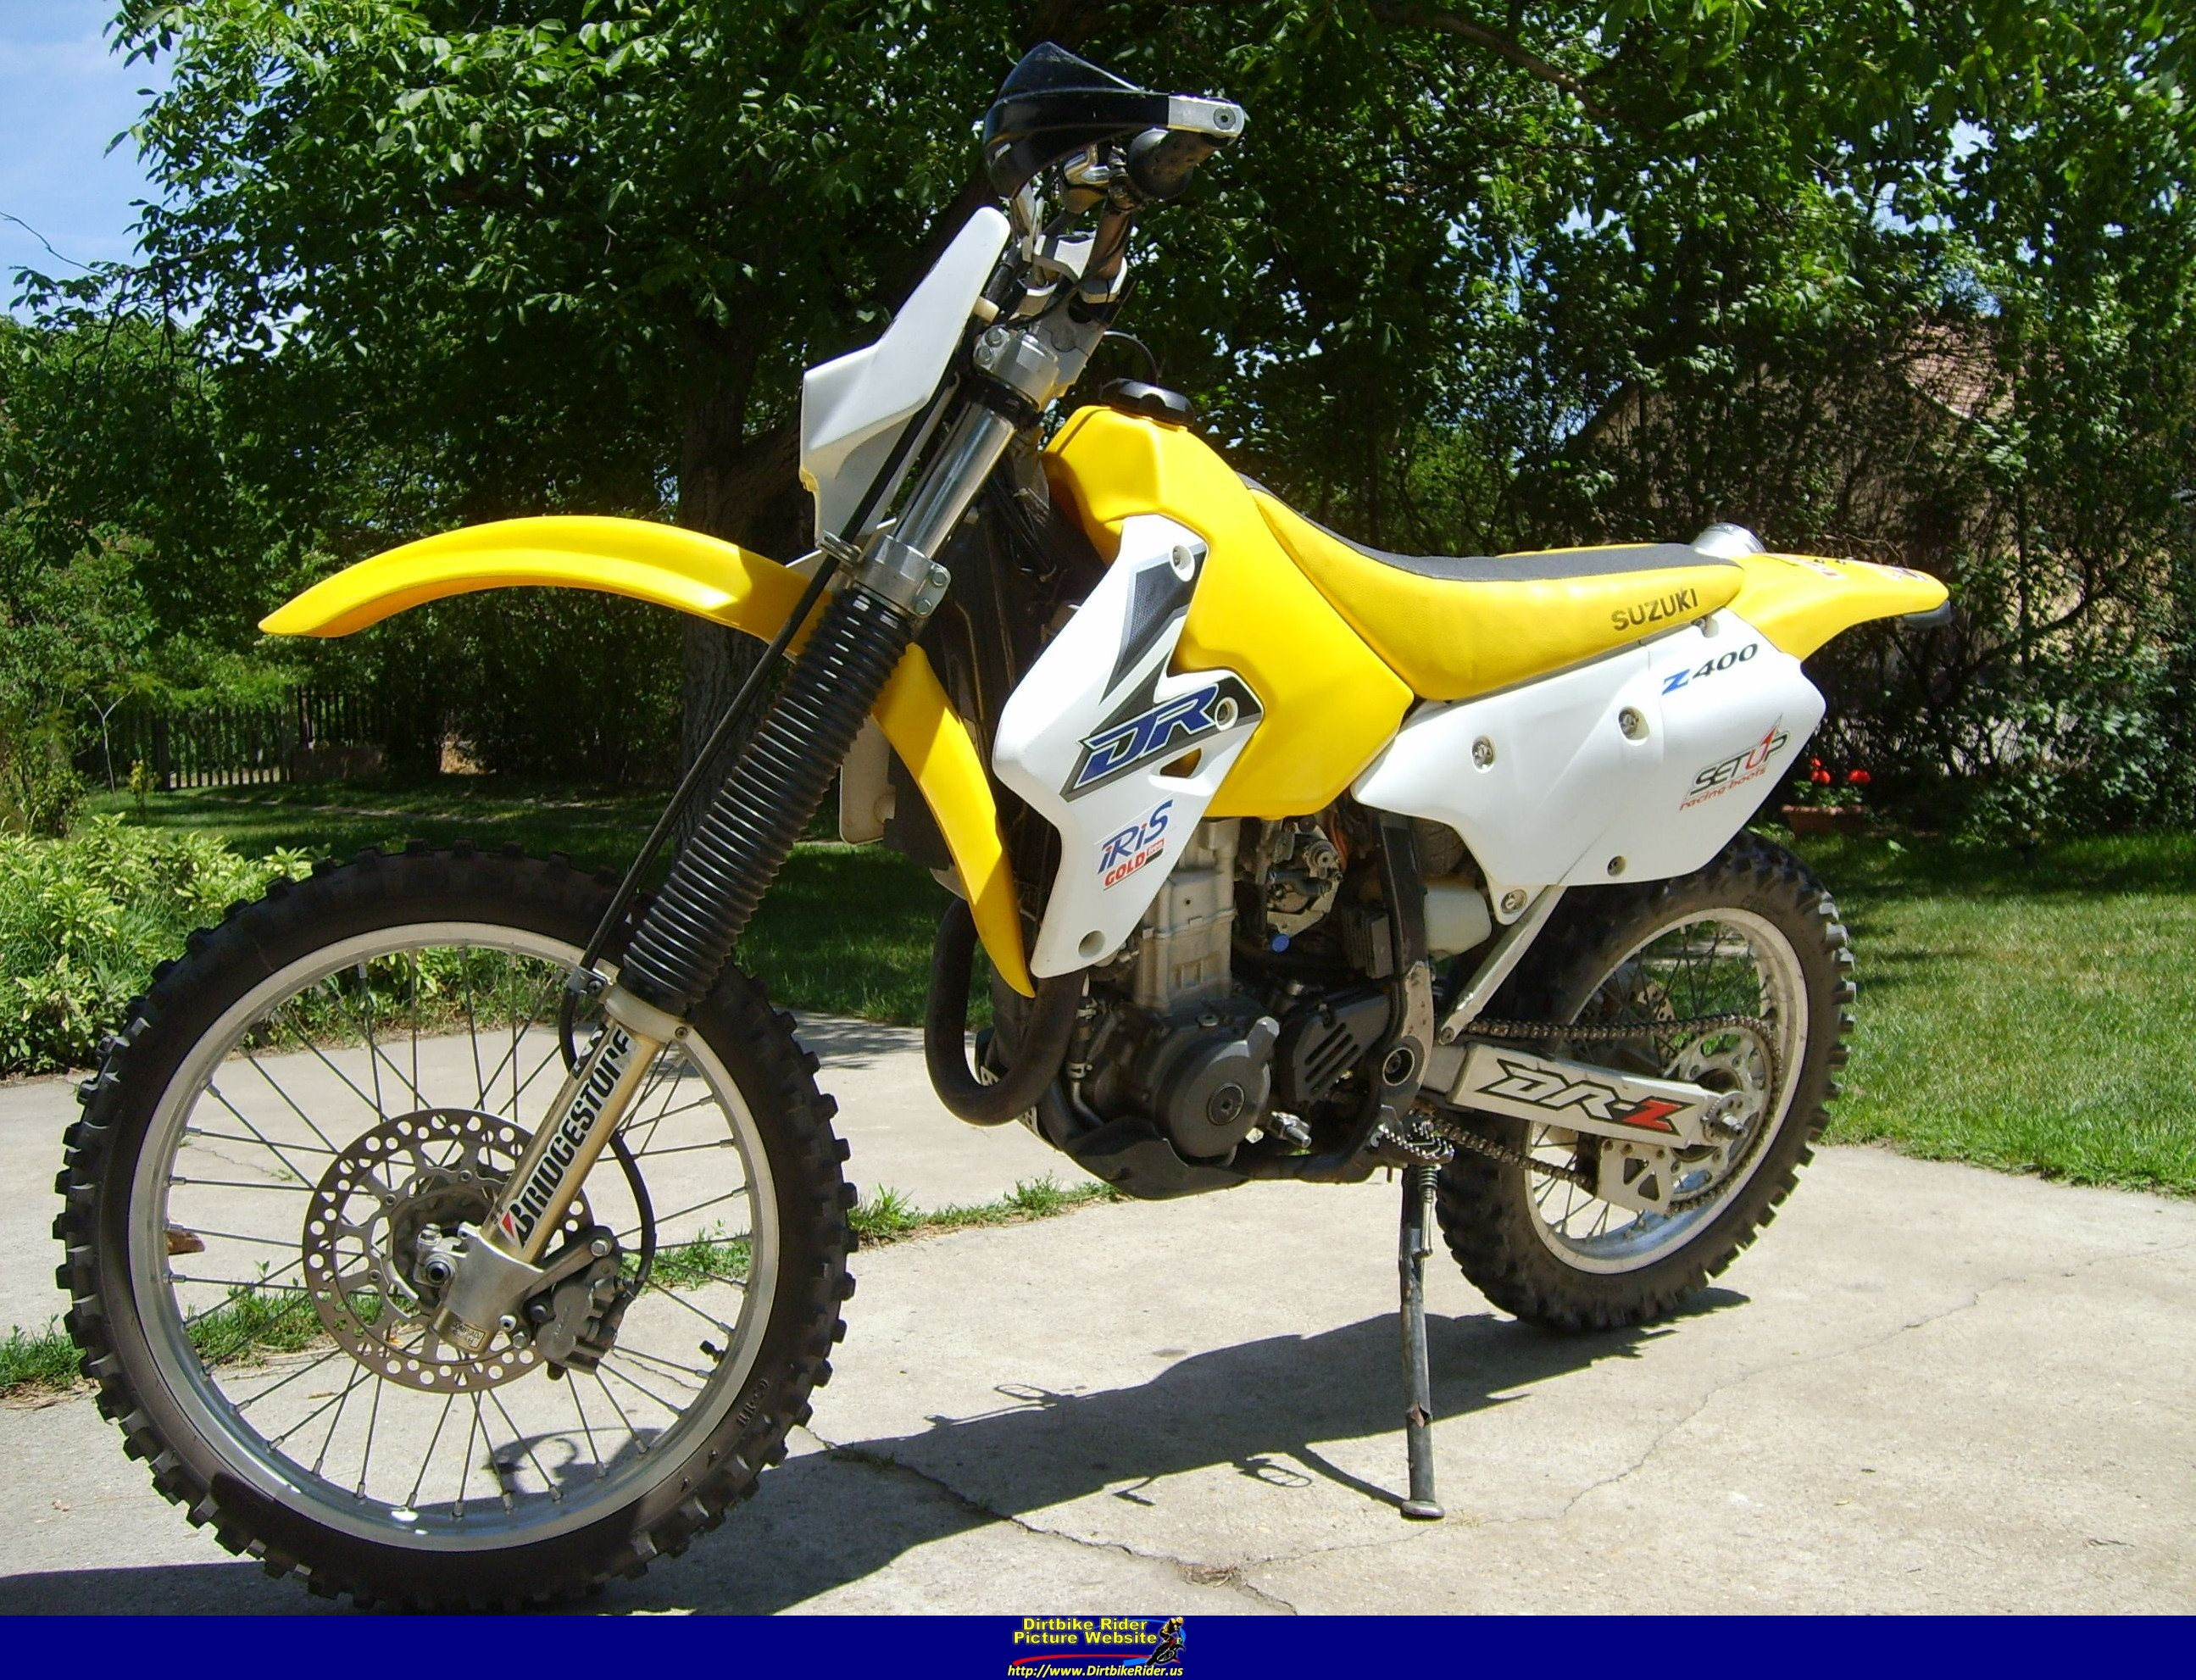 2001 suzuki drz 400s manual open source user manual u2022 rh dramatic varieties com Suzuki DRZ 400 S Custom suzuki drz 400 s service manual